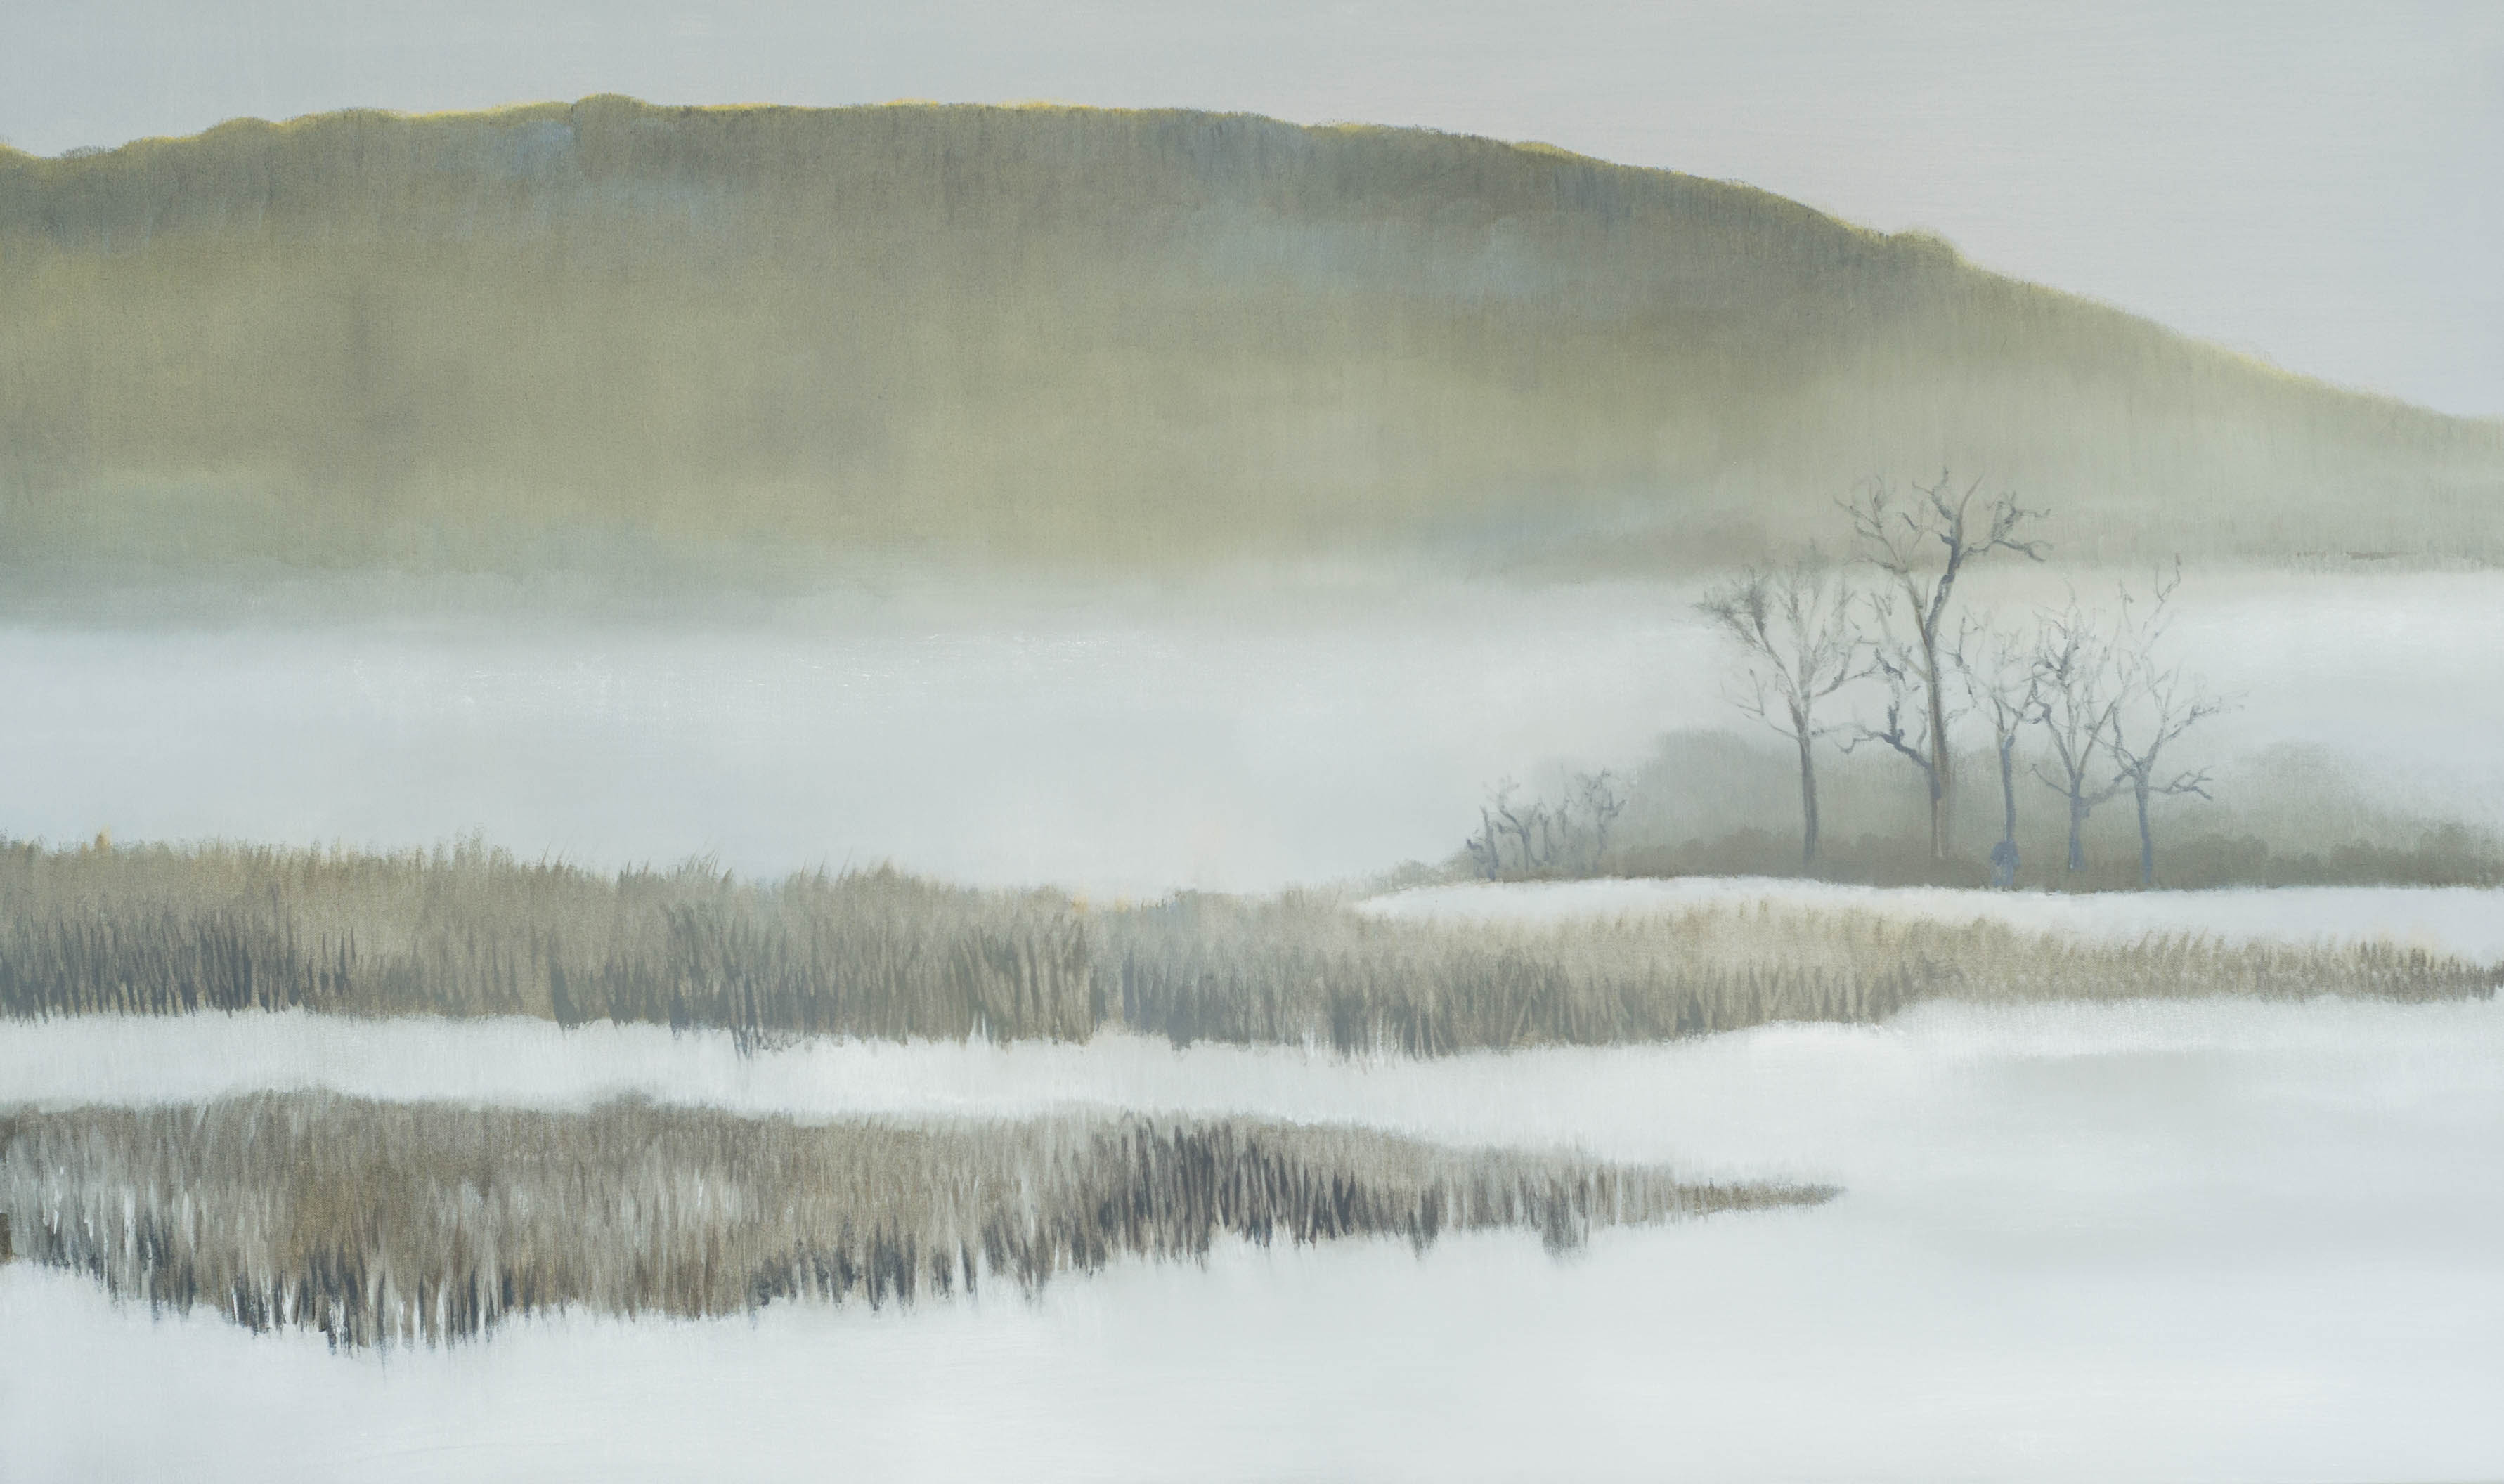 Snowy Day on the River - 36x60 - 2015